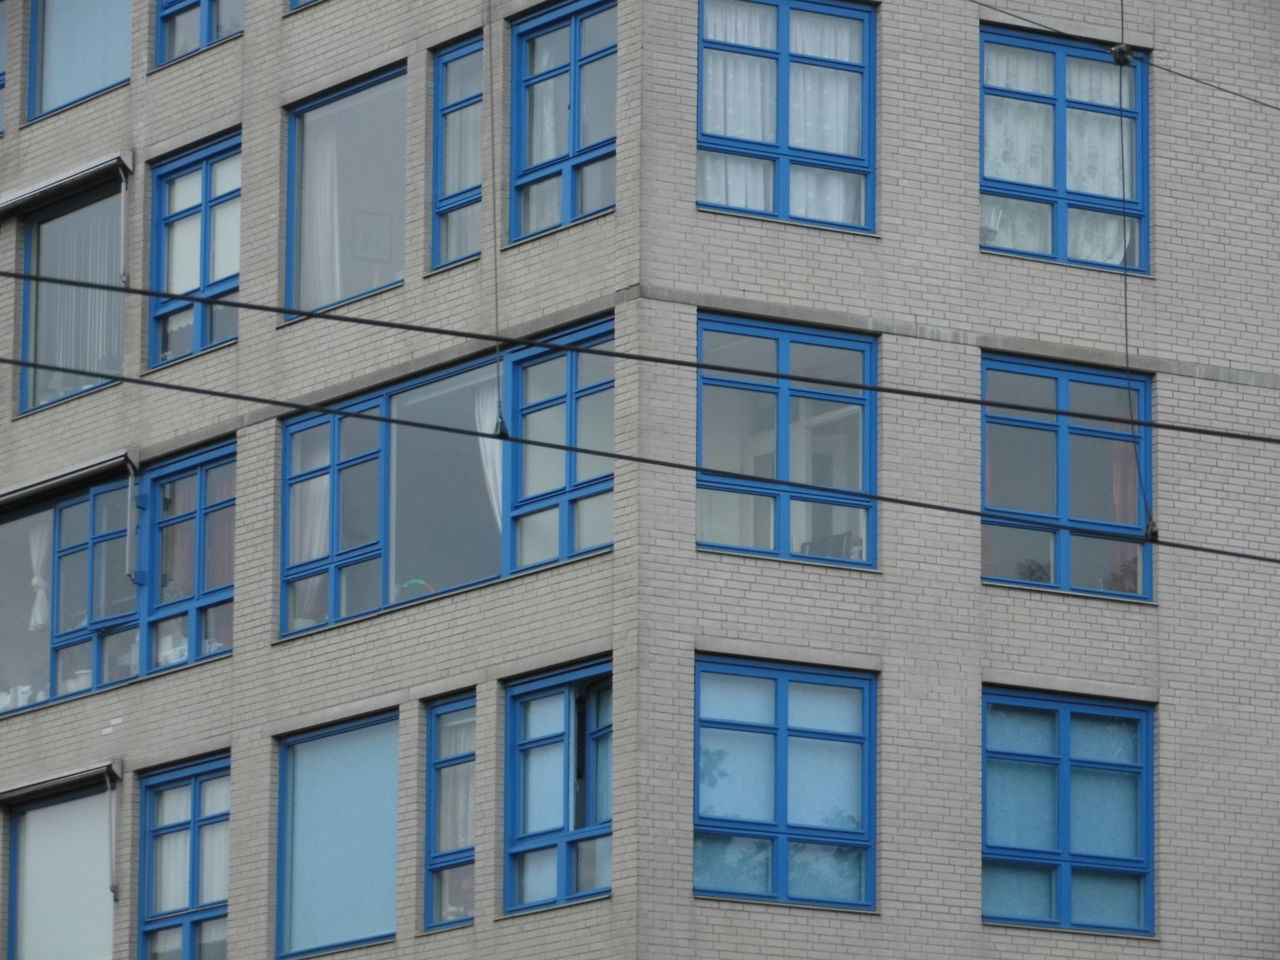 Beautiful stock photos of glas, building exterior, architecture, window, built structure